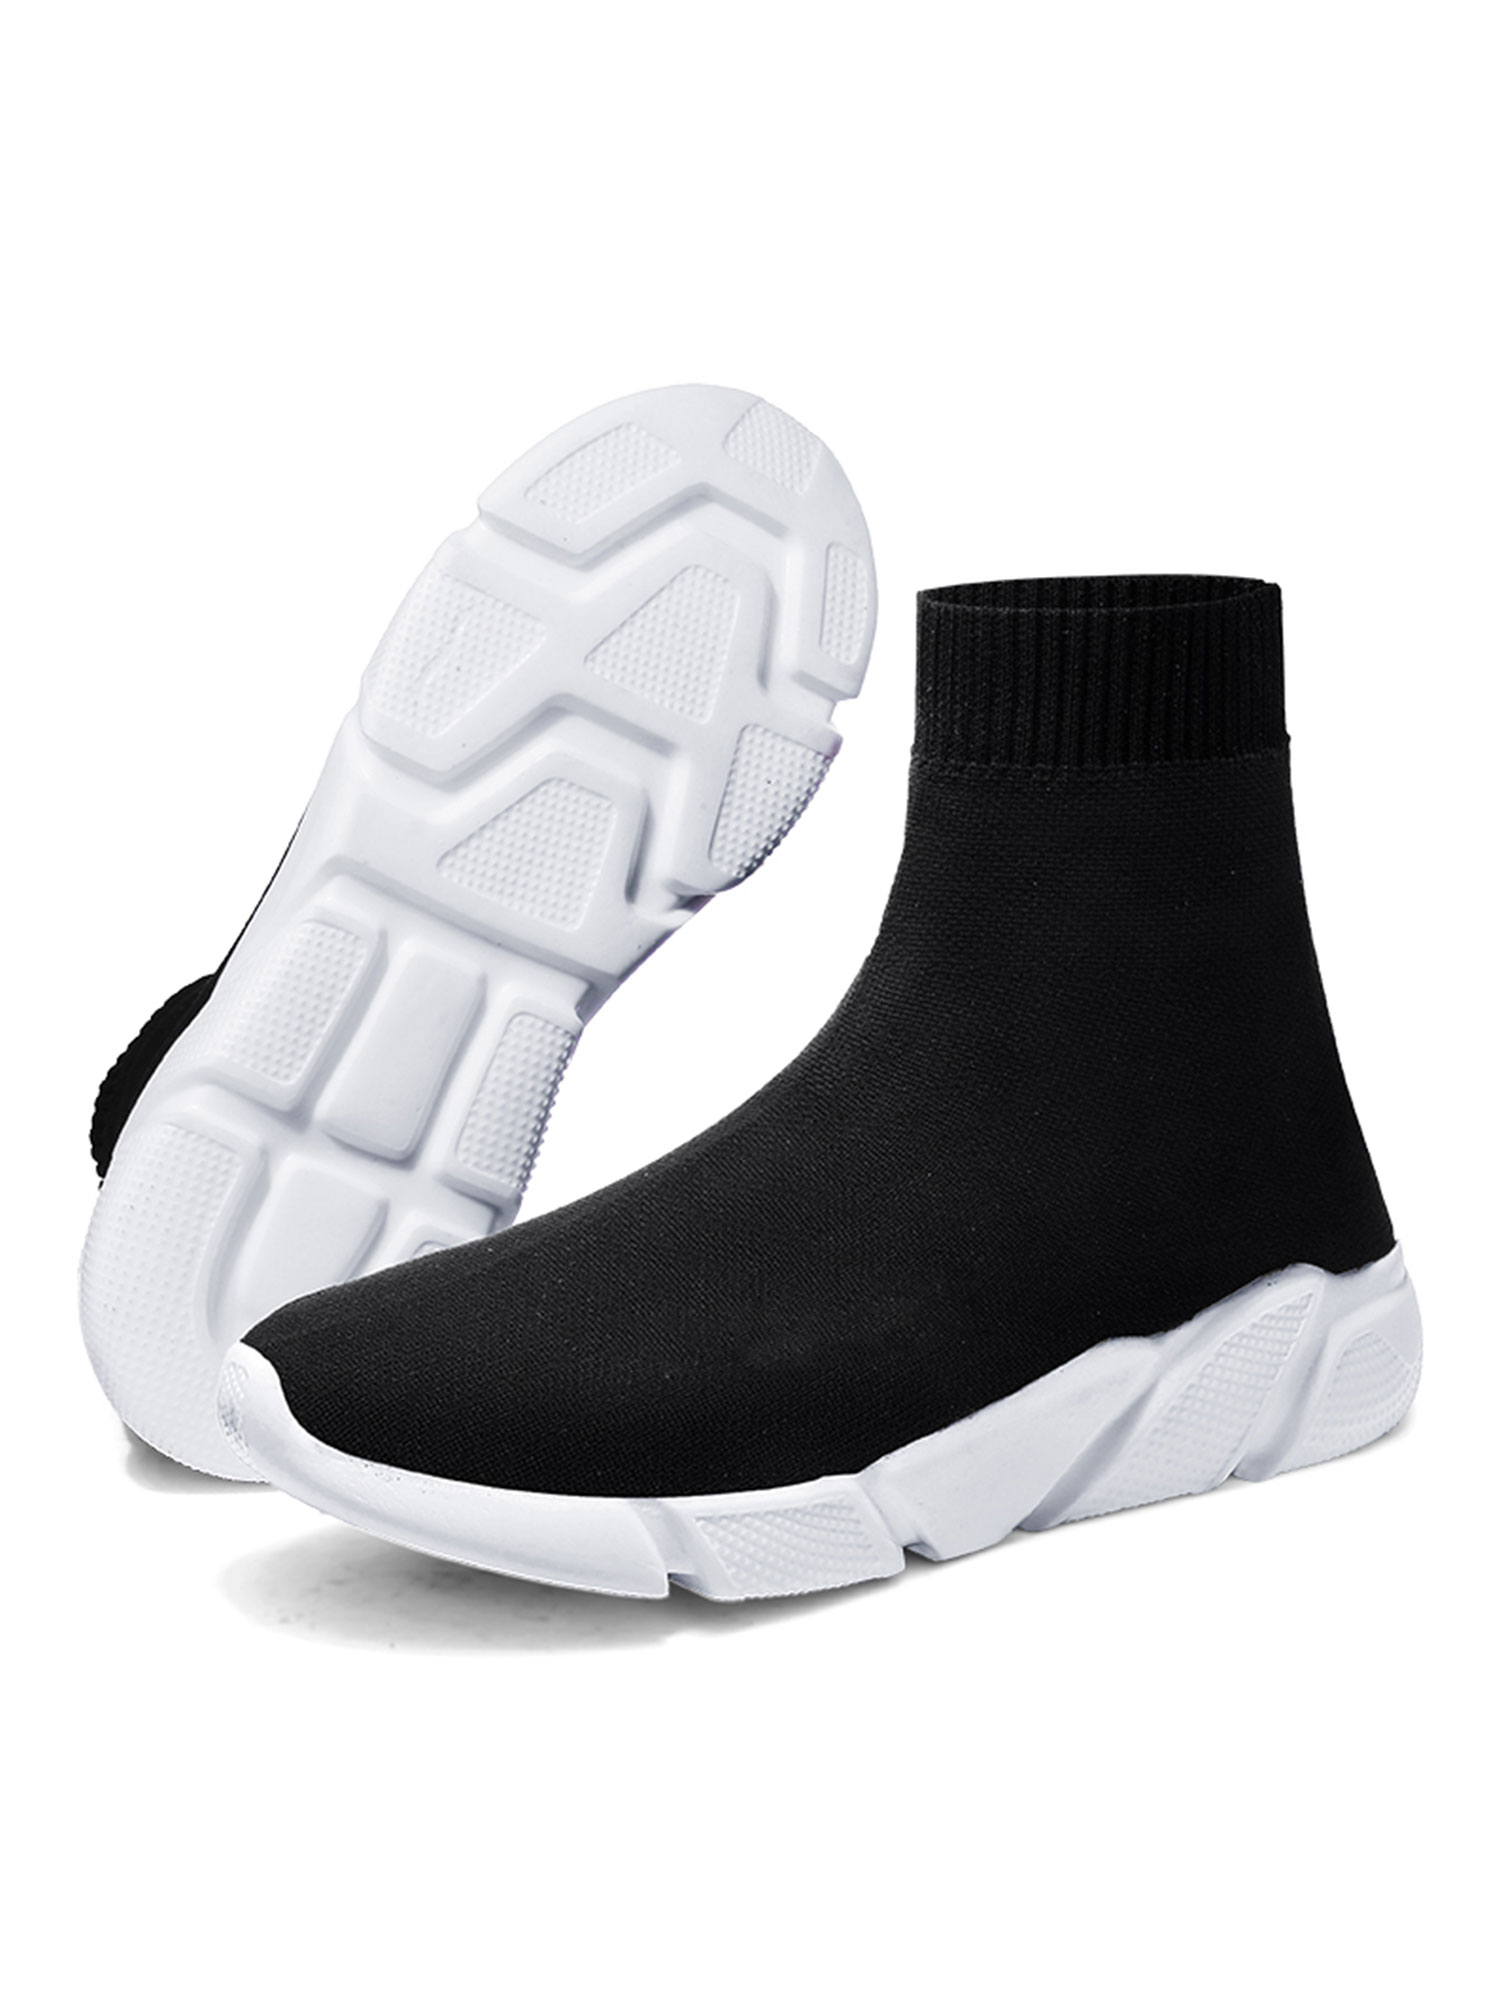 dbee3fc38750 Tanleewa - Men s Sock Shoes High Top Running Lightweight Breathable Casual  Sports Shoes Fashion Sneakers Walking Shoes - Walmart.com